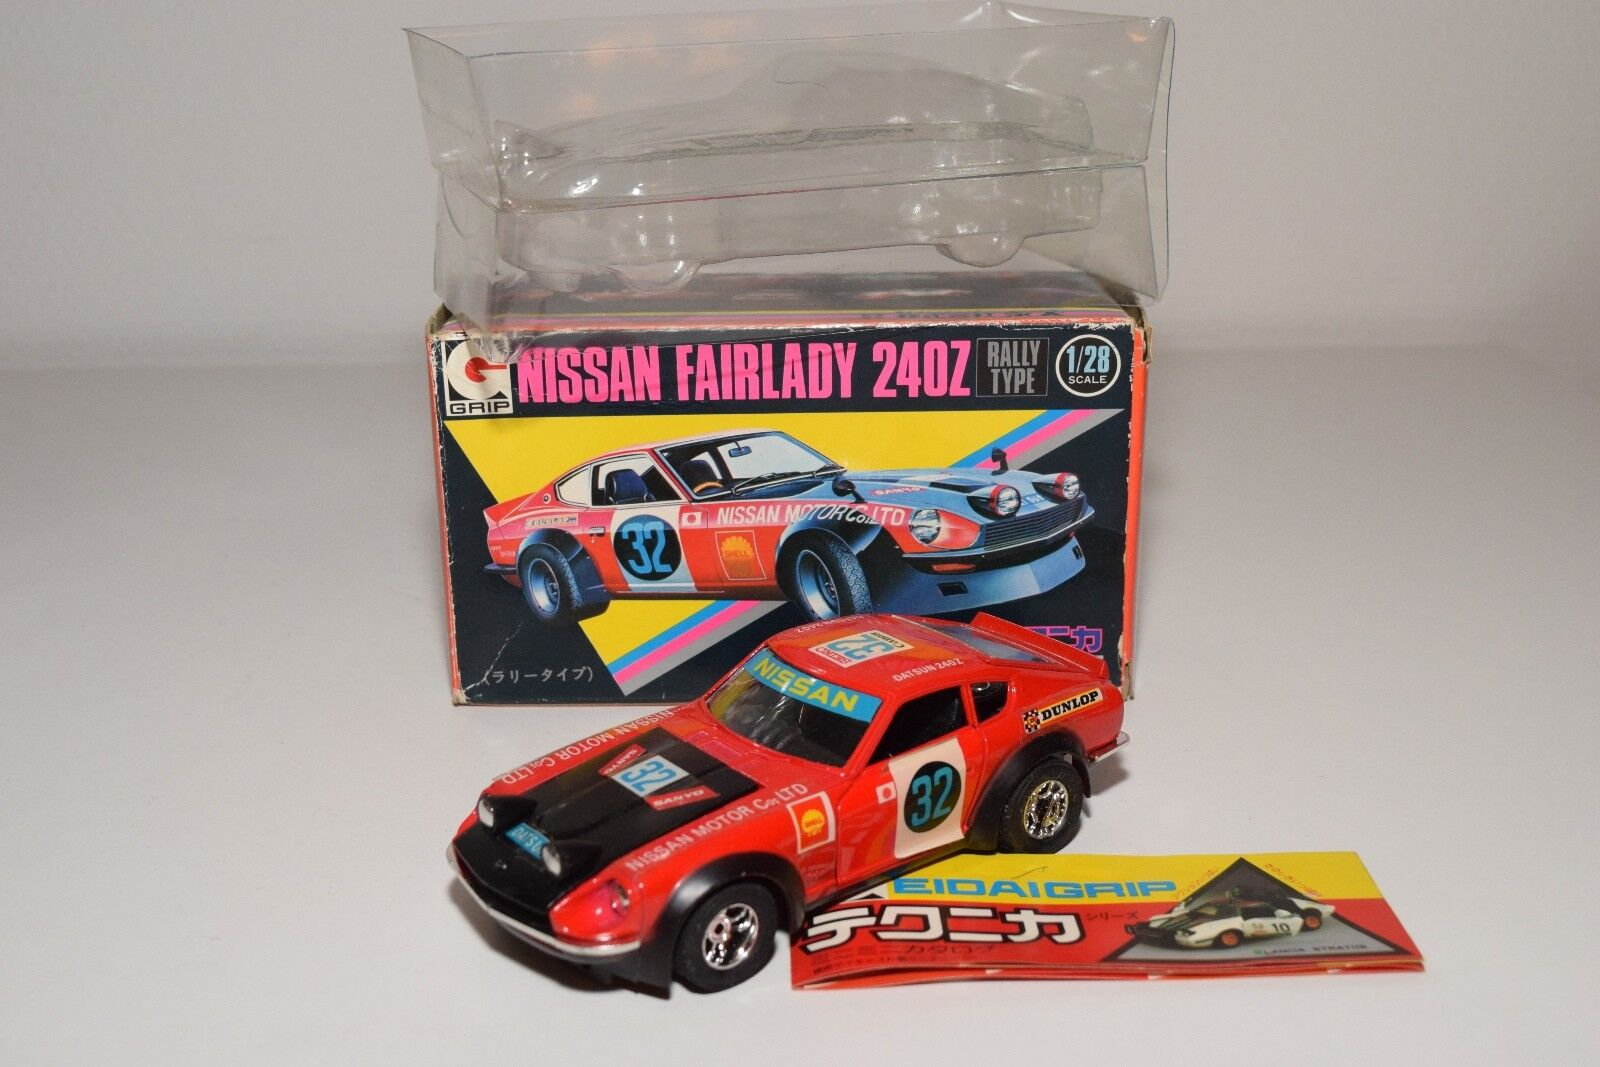 .  EDAI EIDAI GRIP 4 NISSAN FAIRLADY 240Z 240 Z SAFARI RALLY RED MINT BOXED RARE